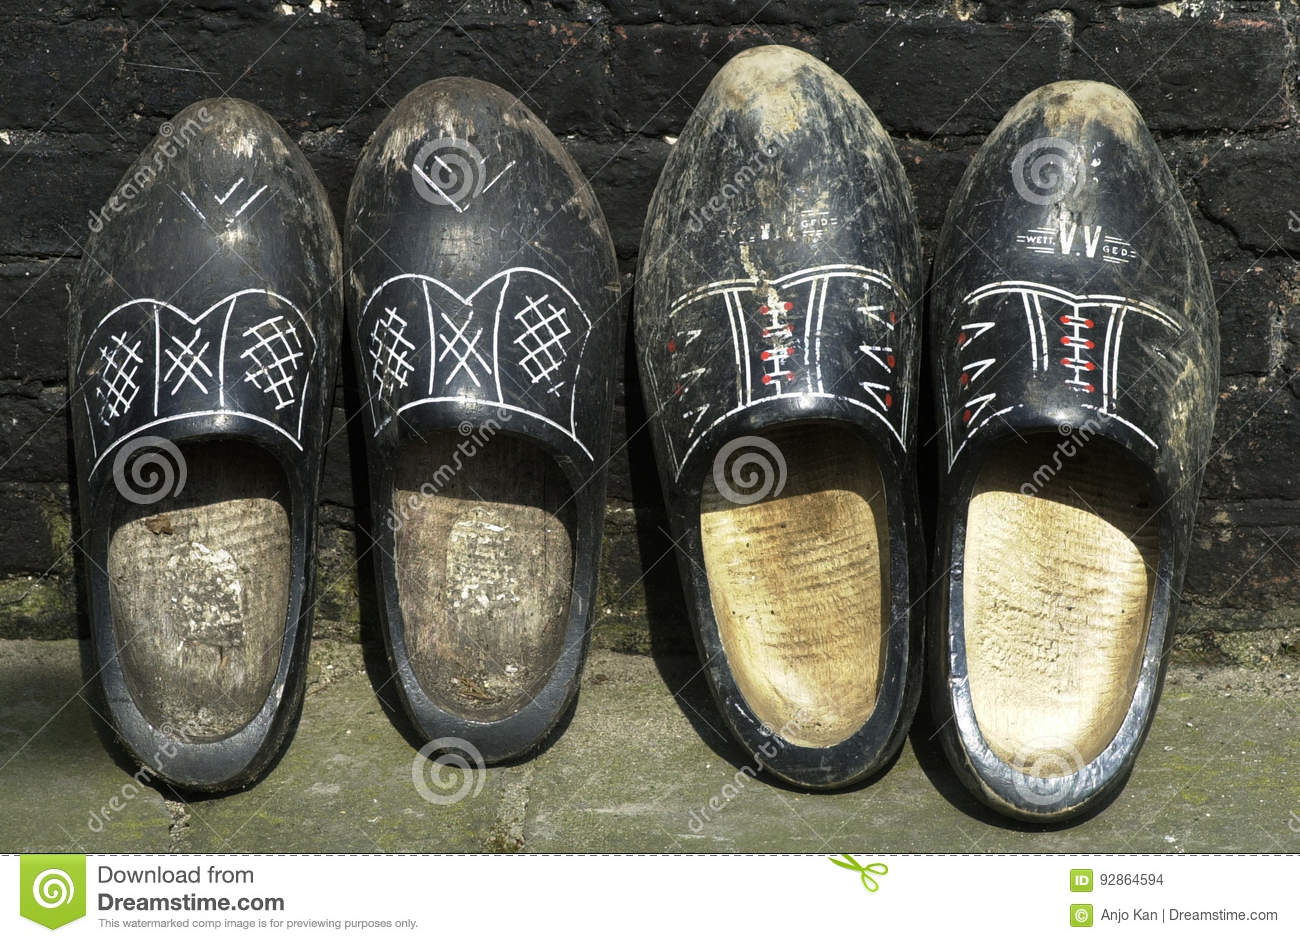 d3818ec9c12dd Two Pairs Of Vintage Wooden Clogs Stock Photo - Image of worn ...